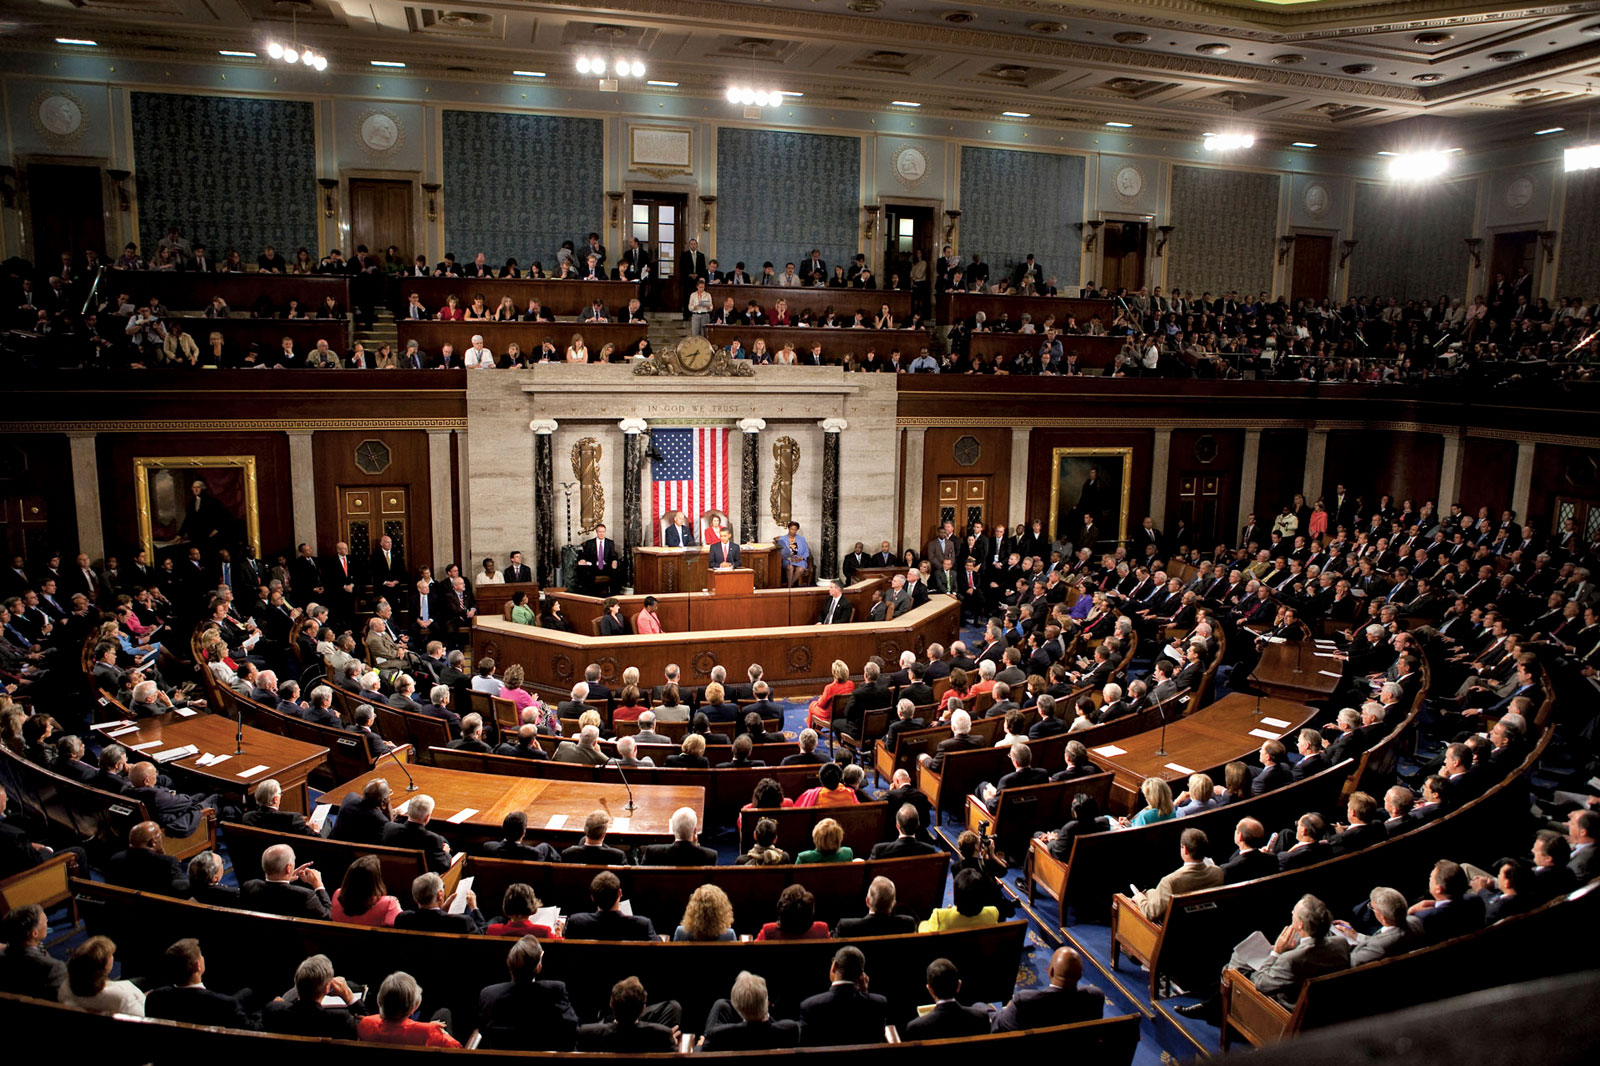 The United States House of Representatives debating the Fair Debt Collection Practices Act